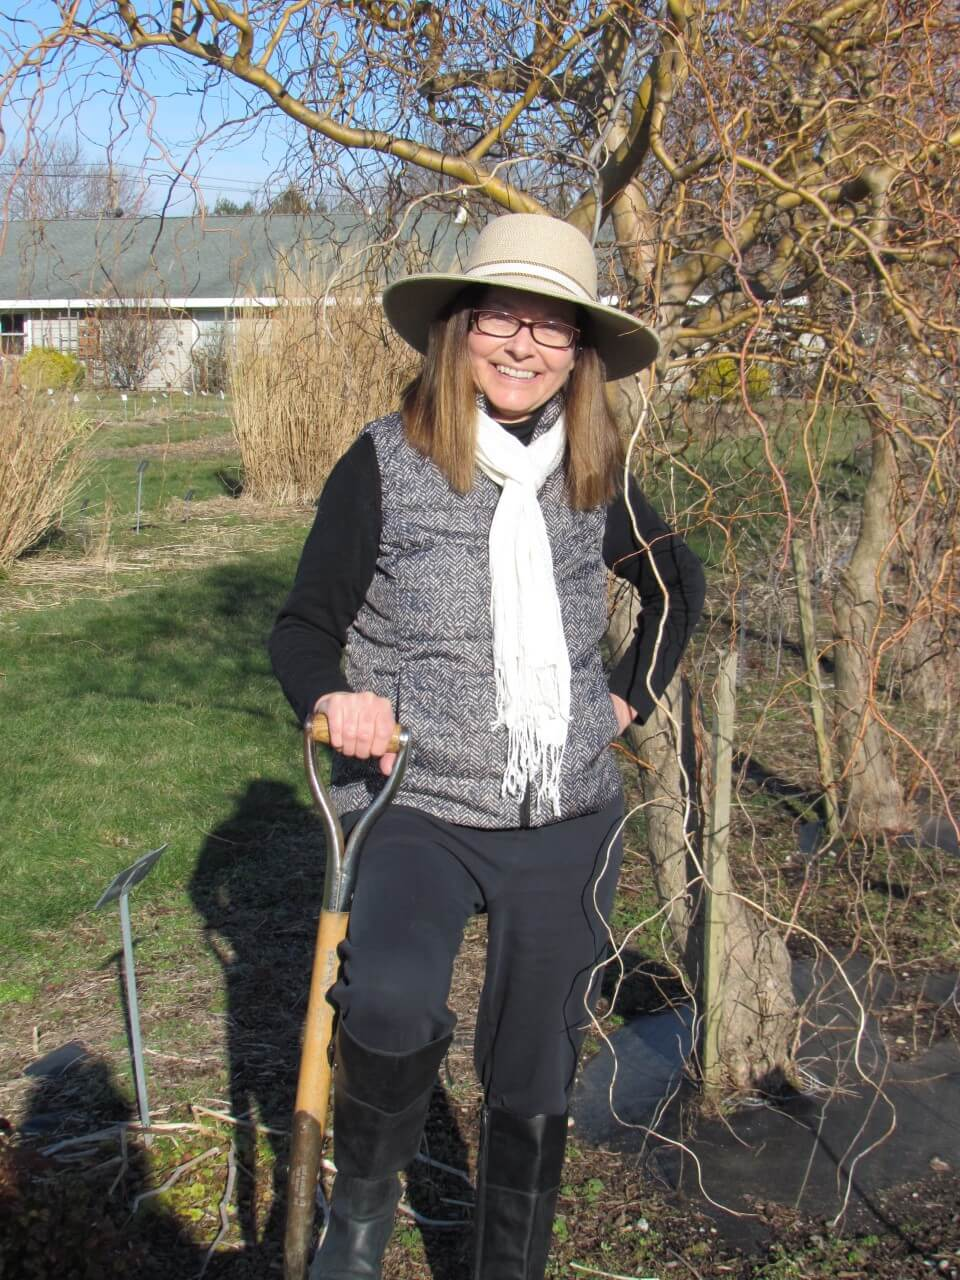 Roxanne Zimmer of Suffolk County's Cornell Cooperative Extension office will present a Winter Seed Sowing Demonstration via Zoom on Tuesday, February 16, 2021 at 10:00 a.m.